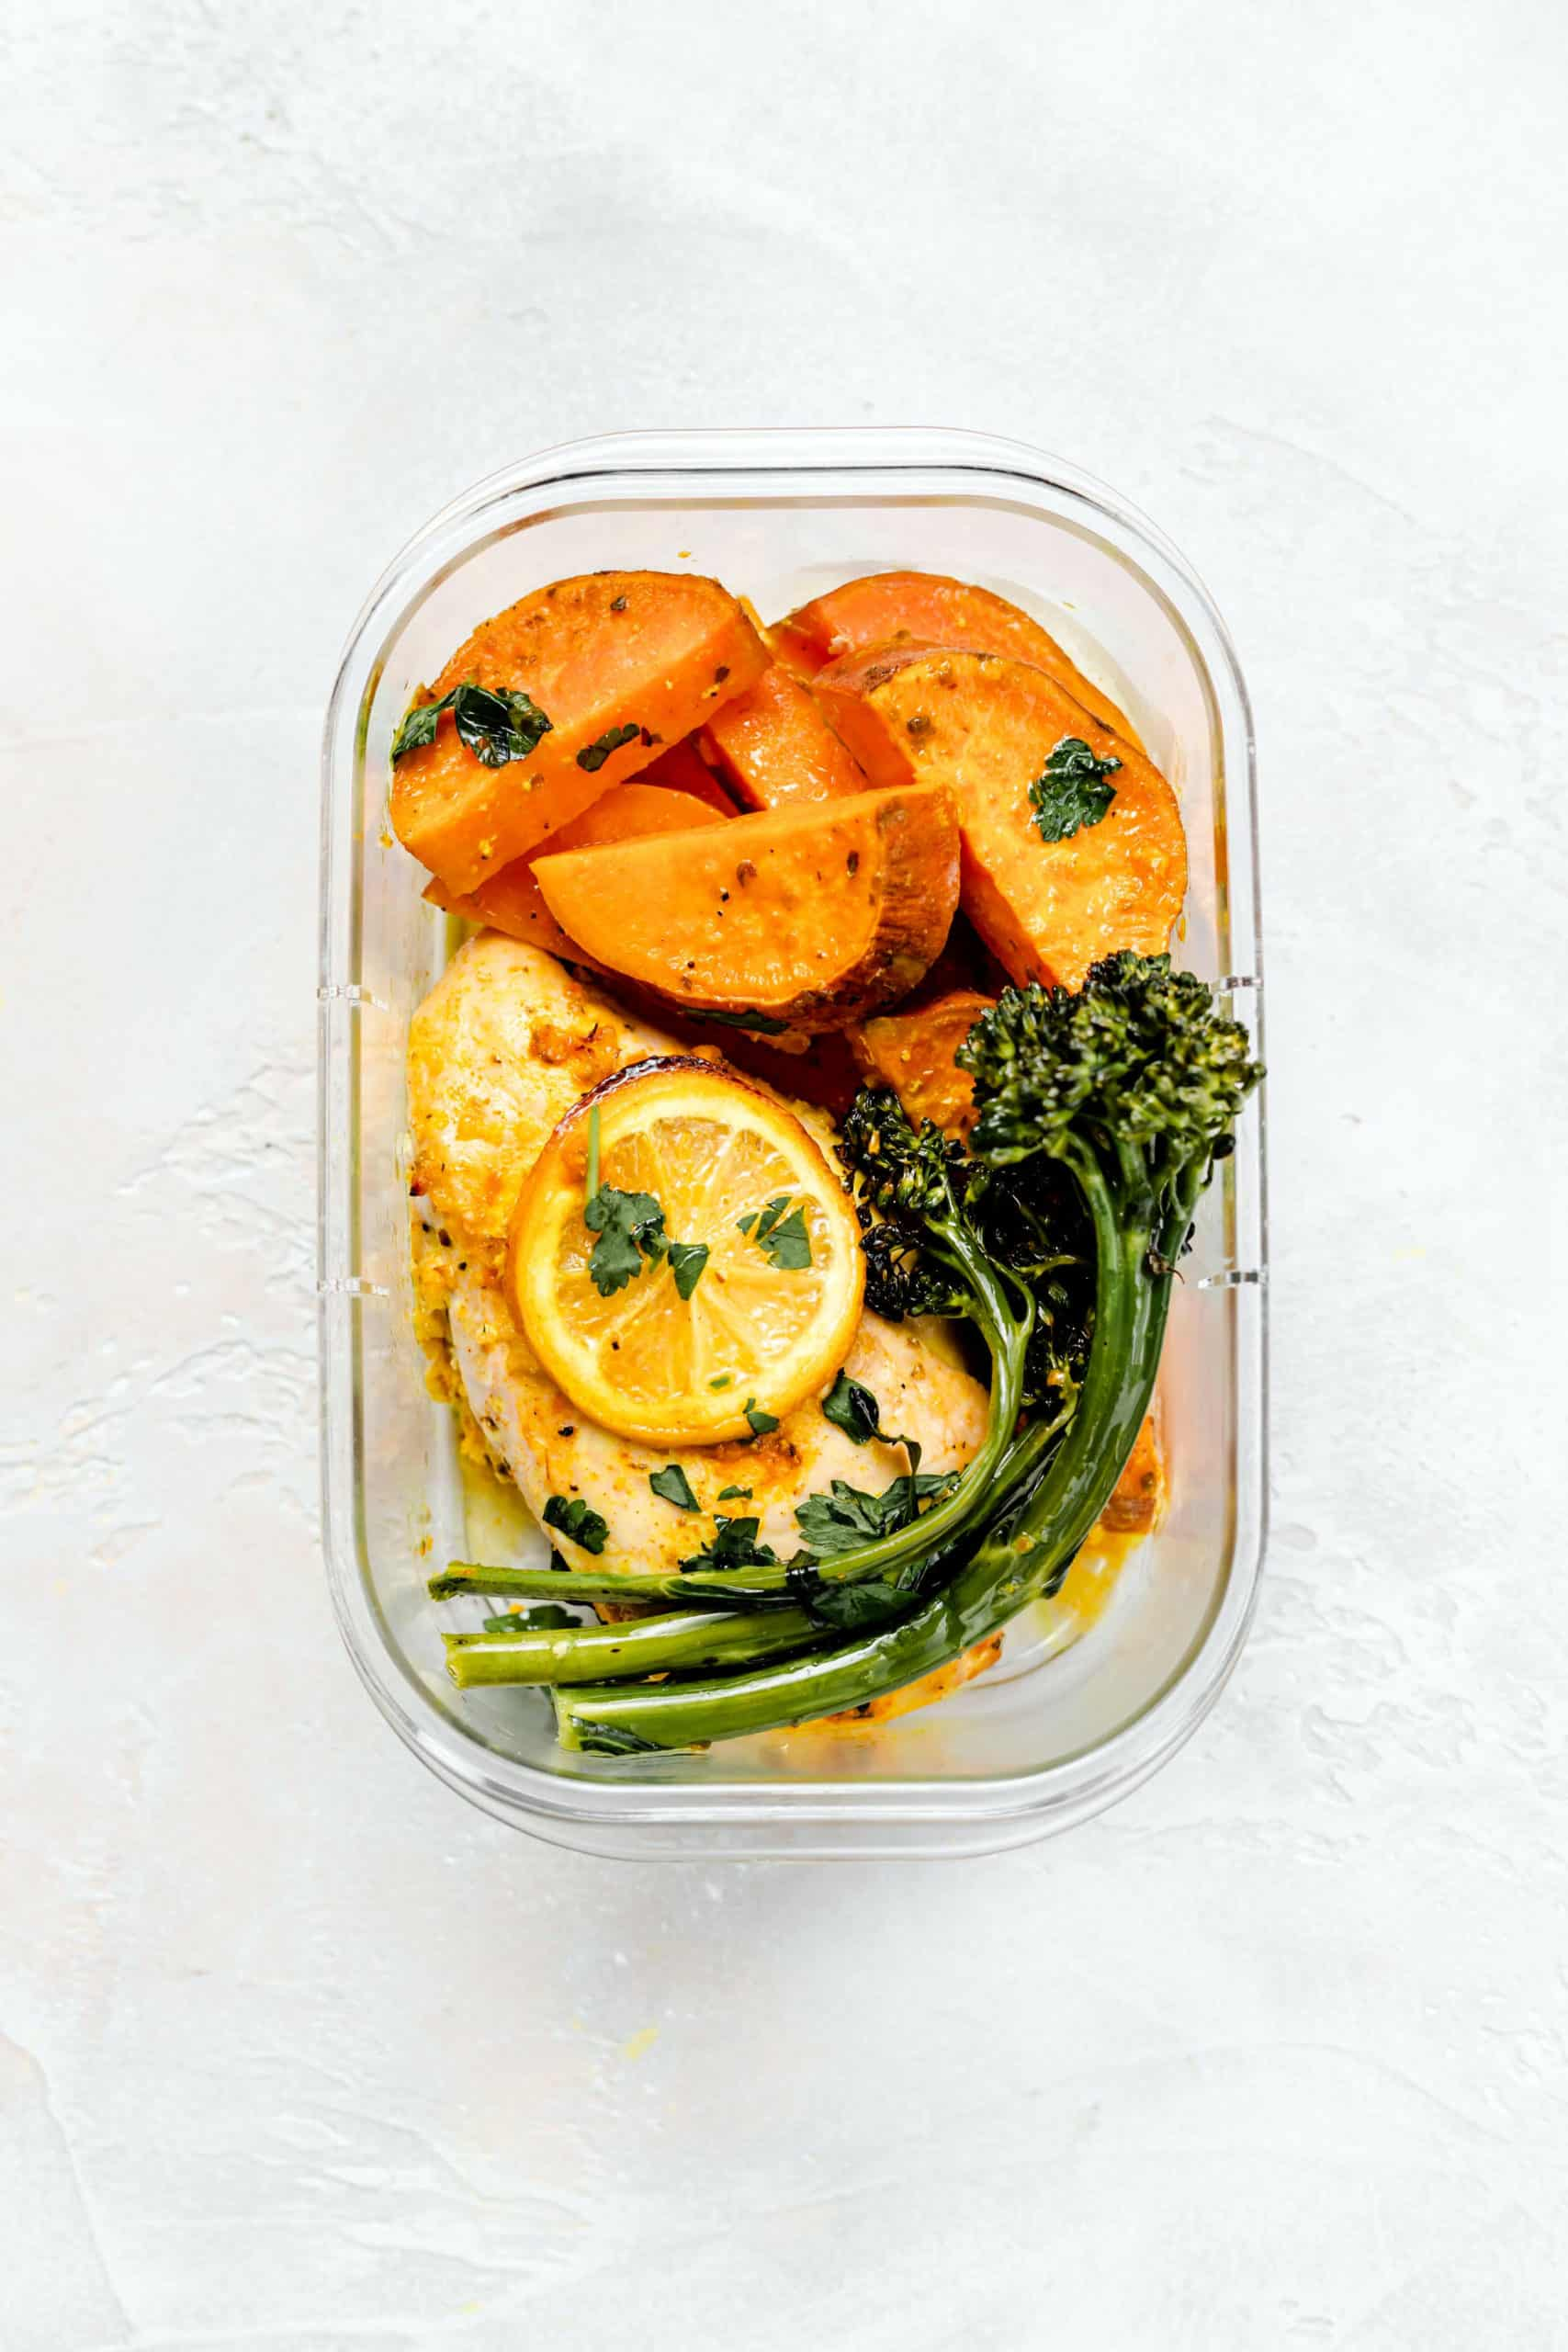 lemon chicken, sweet potatoes, and broccolini in meal prep container